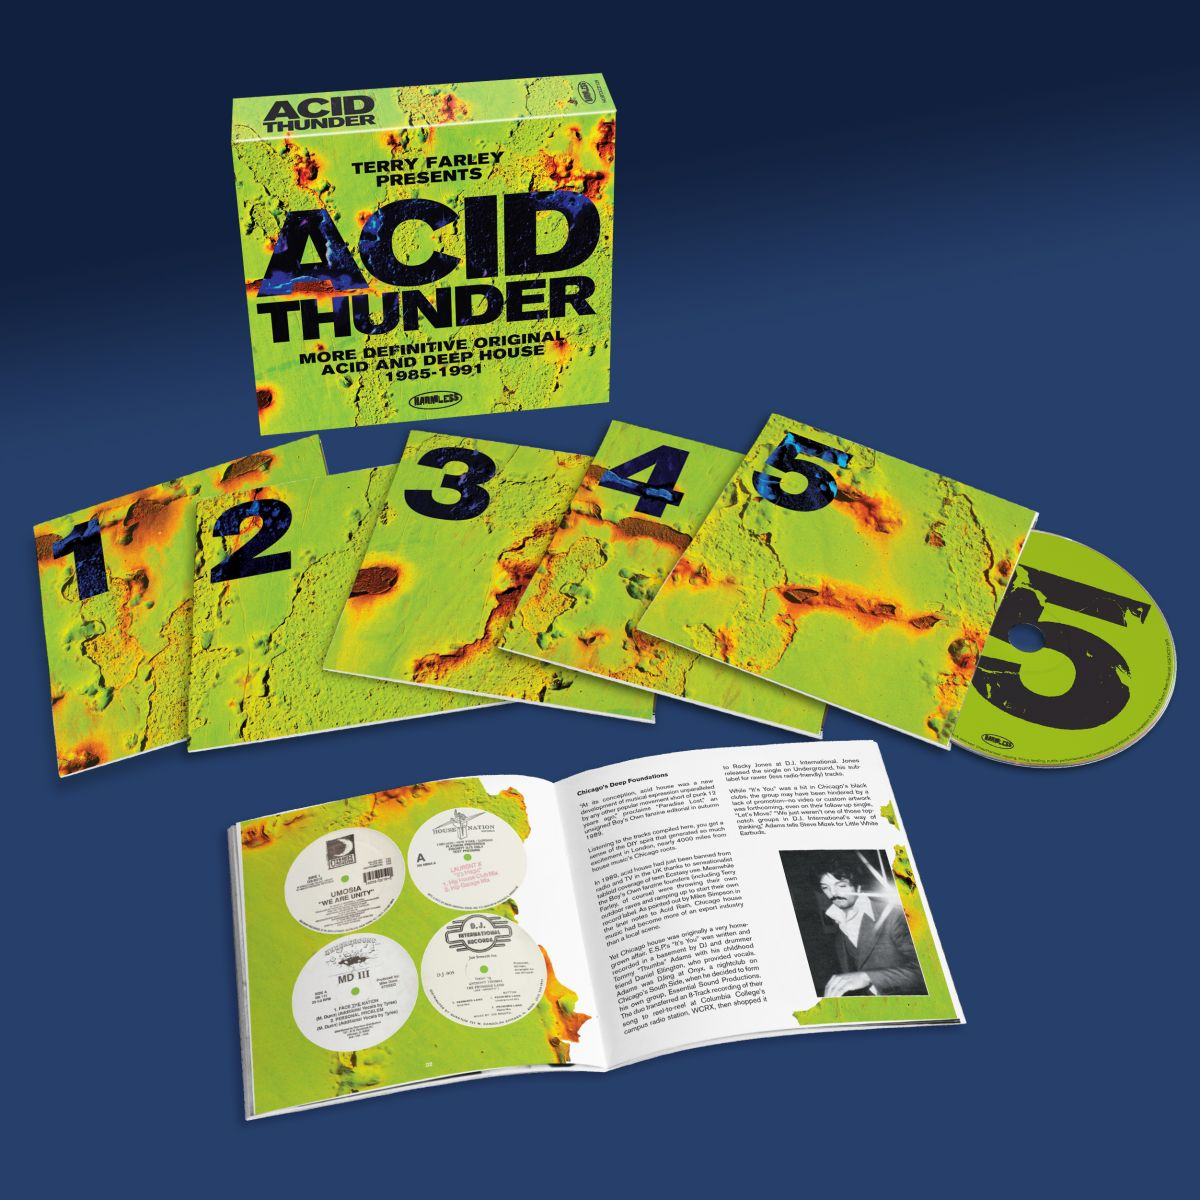 Magazine music london for What do you know about acid house music